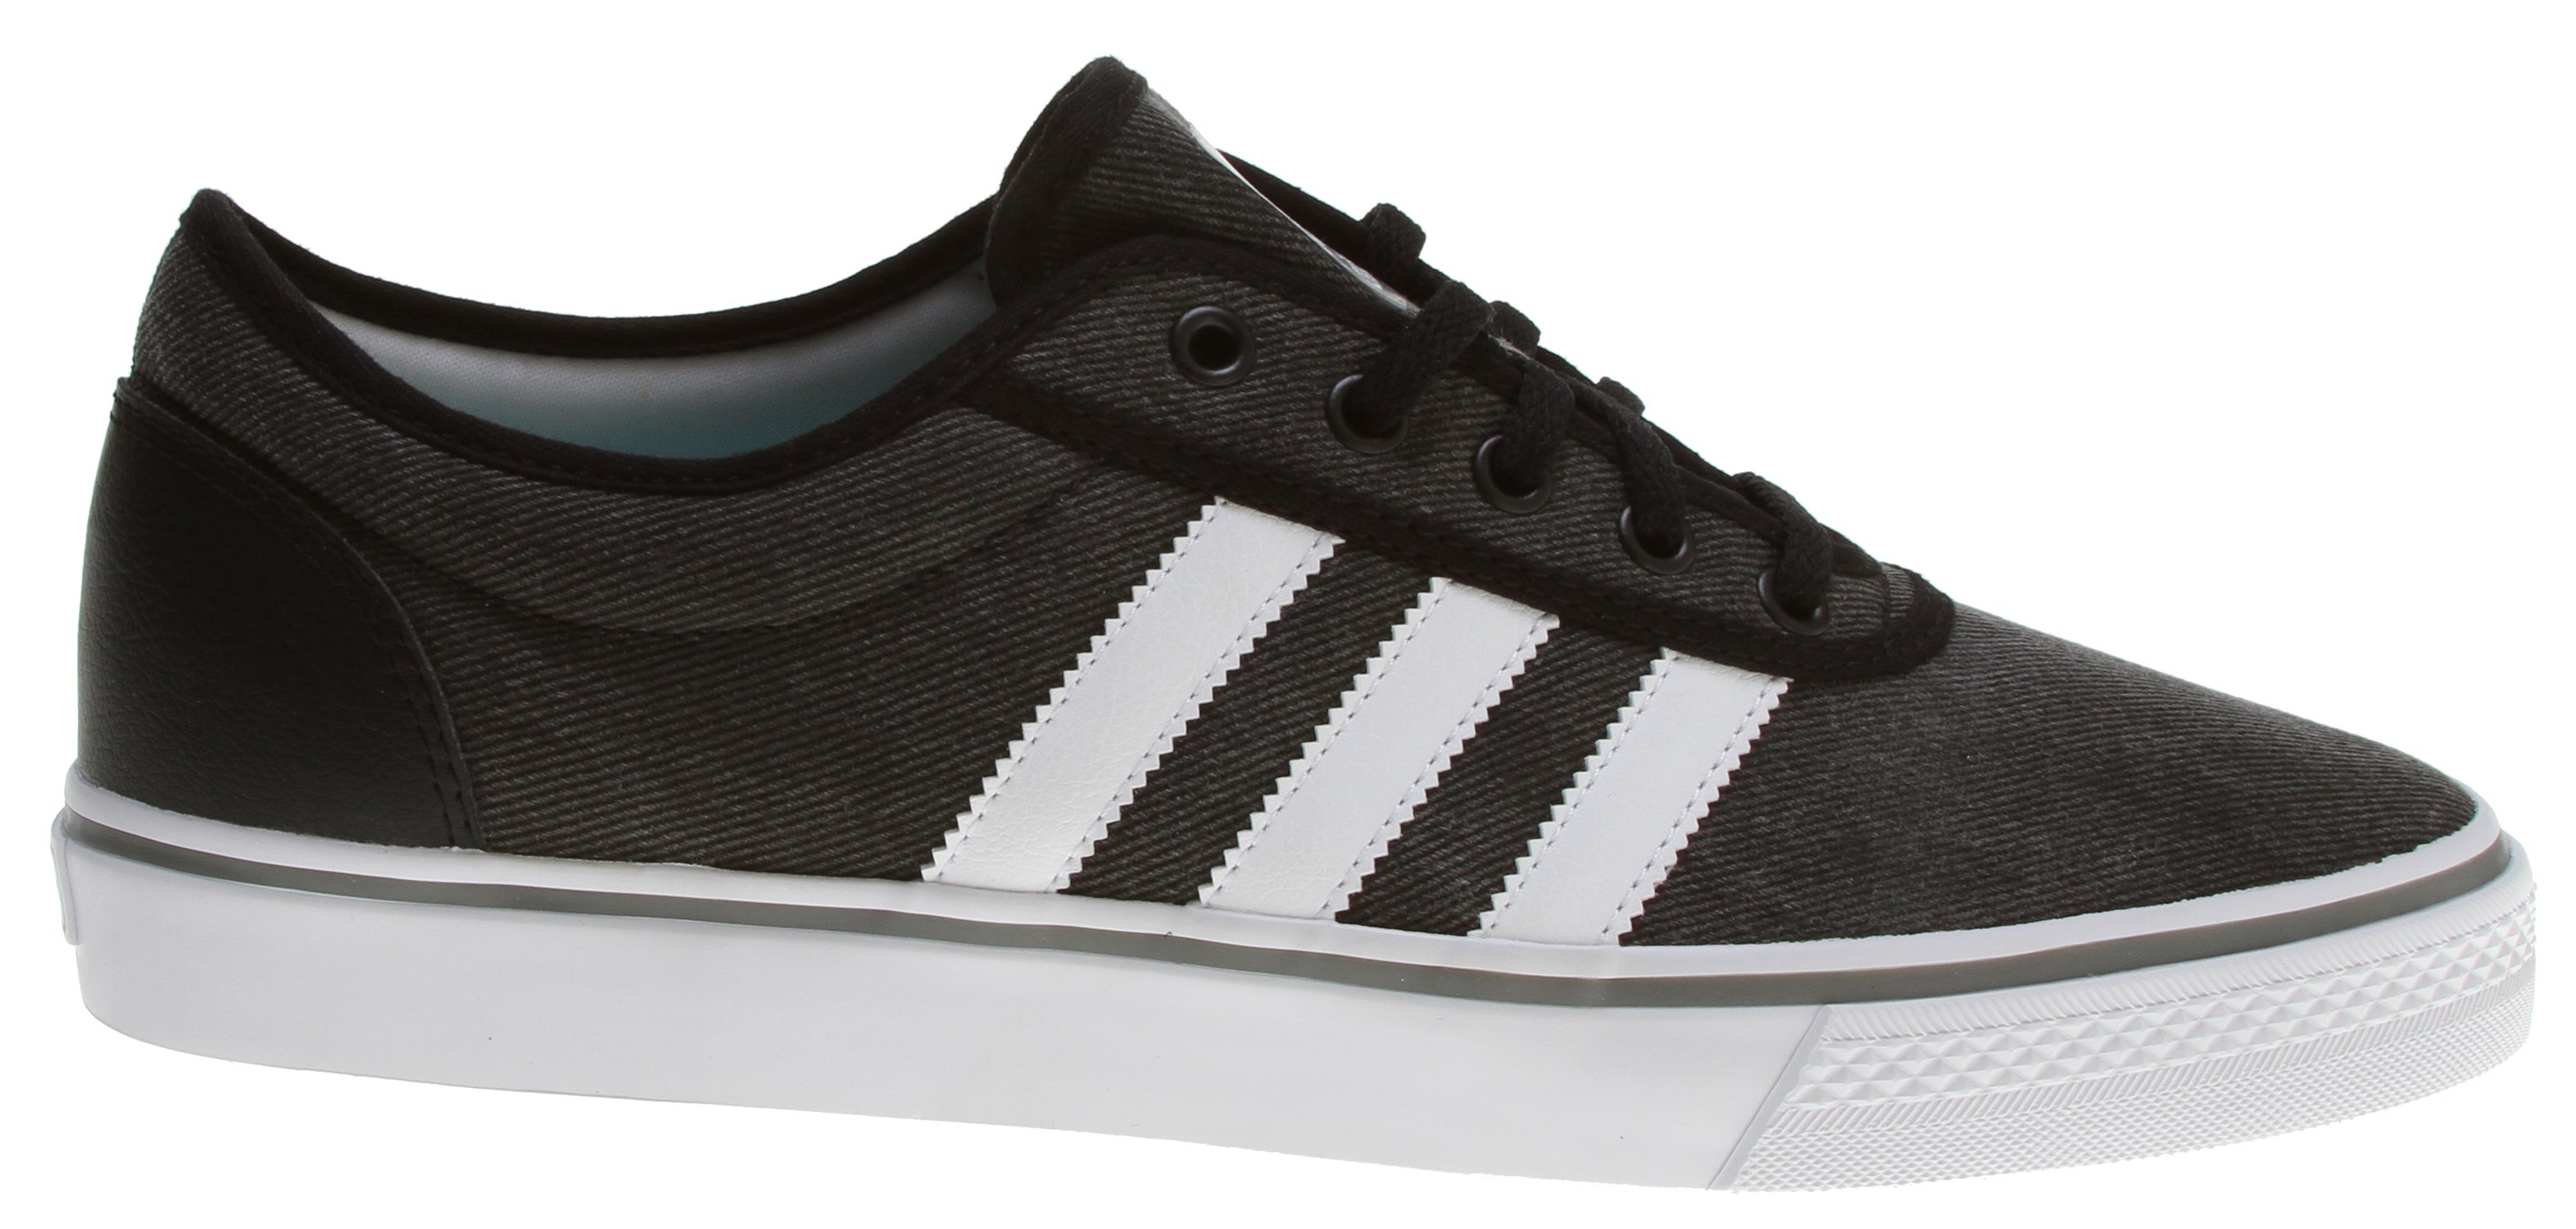 Skateboard These Adidas adiEase shoes get ready for summer with an easy to wear suede upper and laid back vulcanized outsole. - $41.95